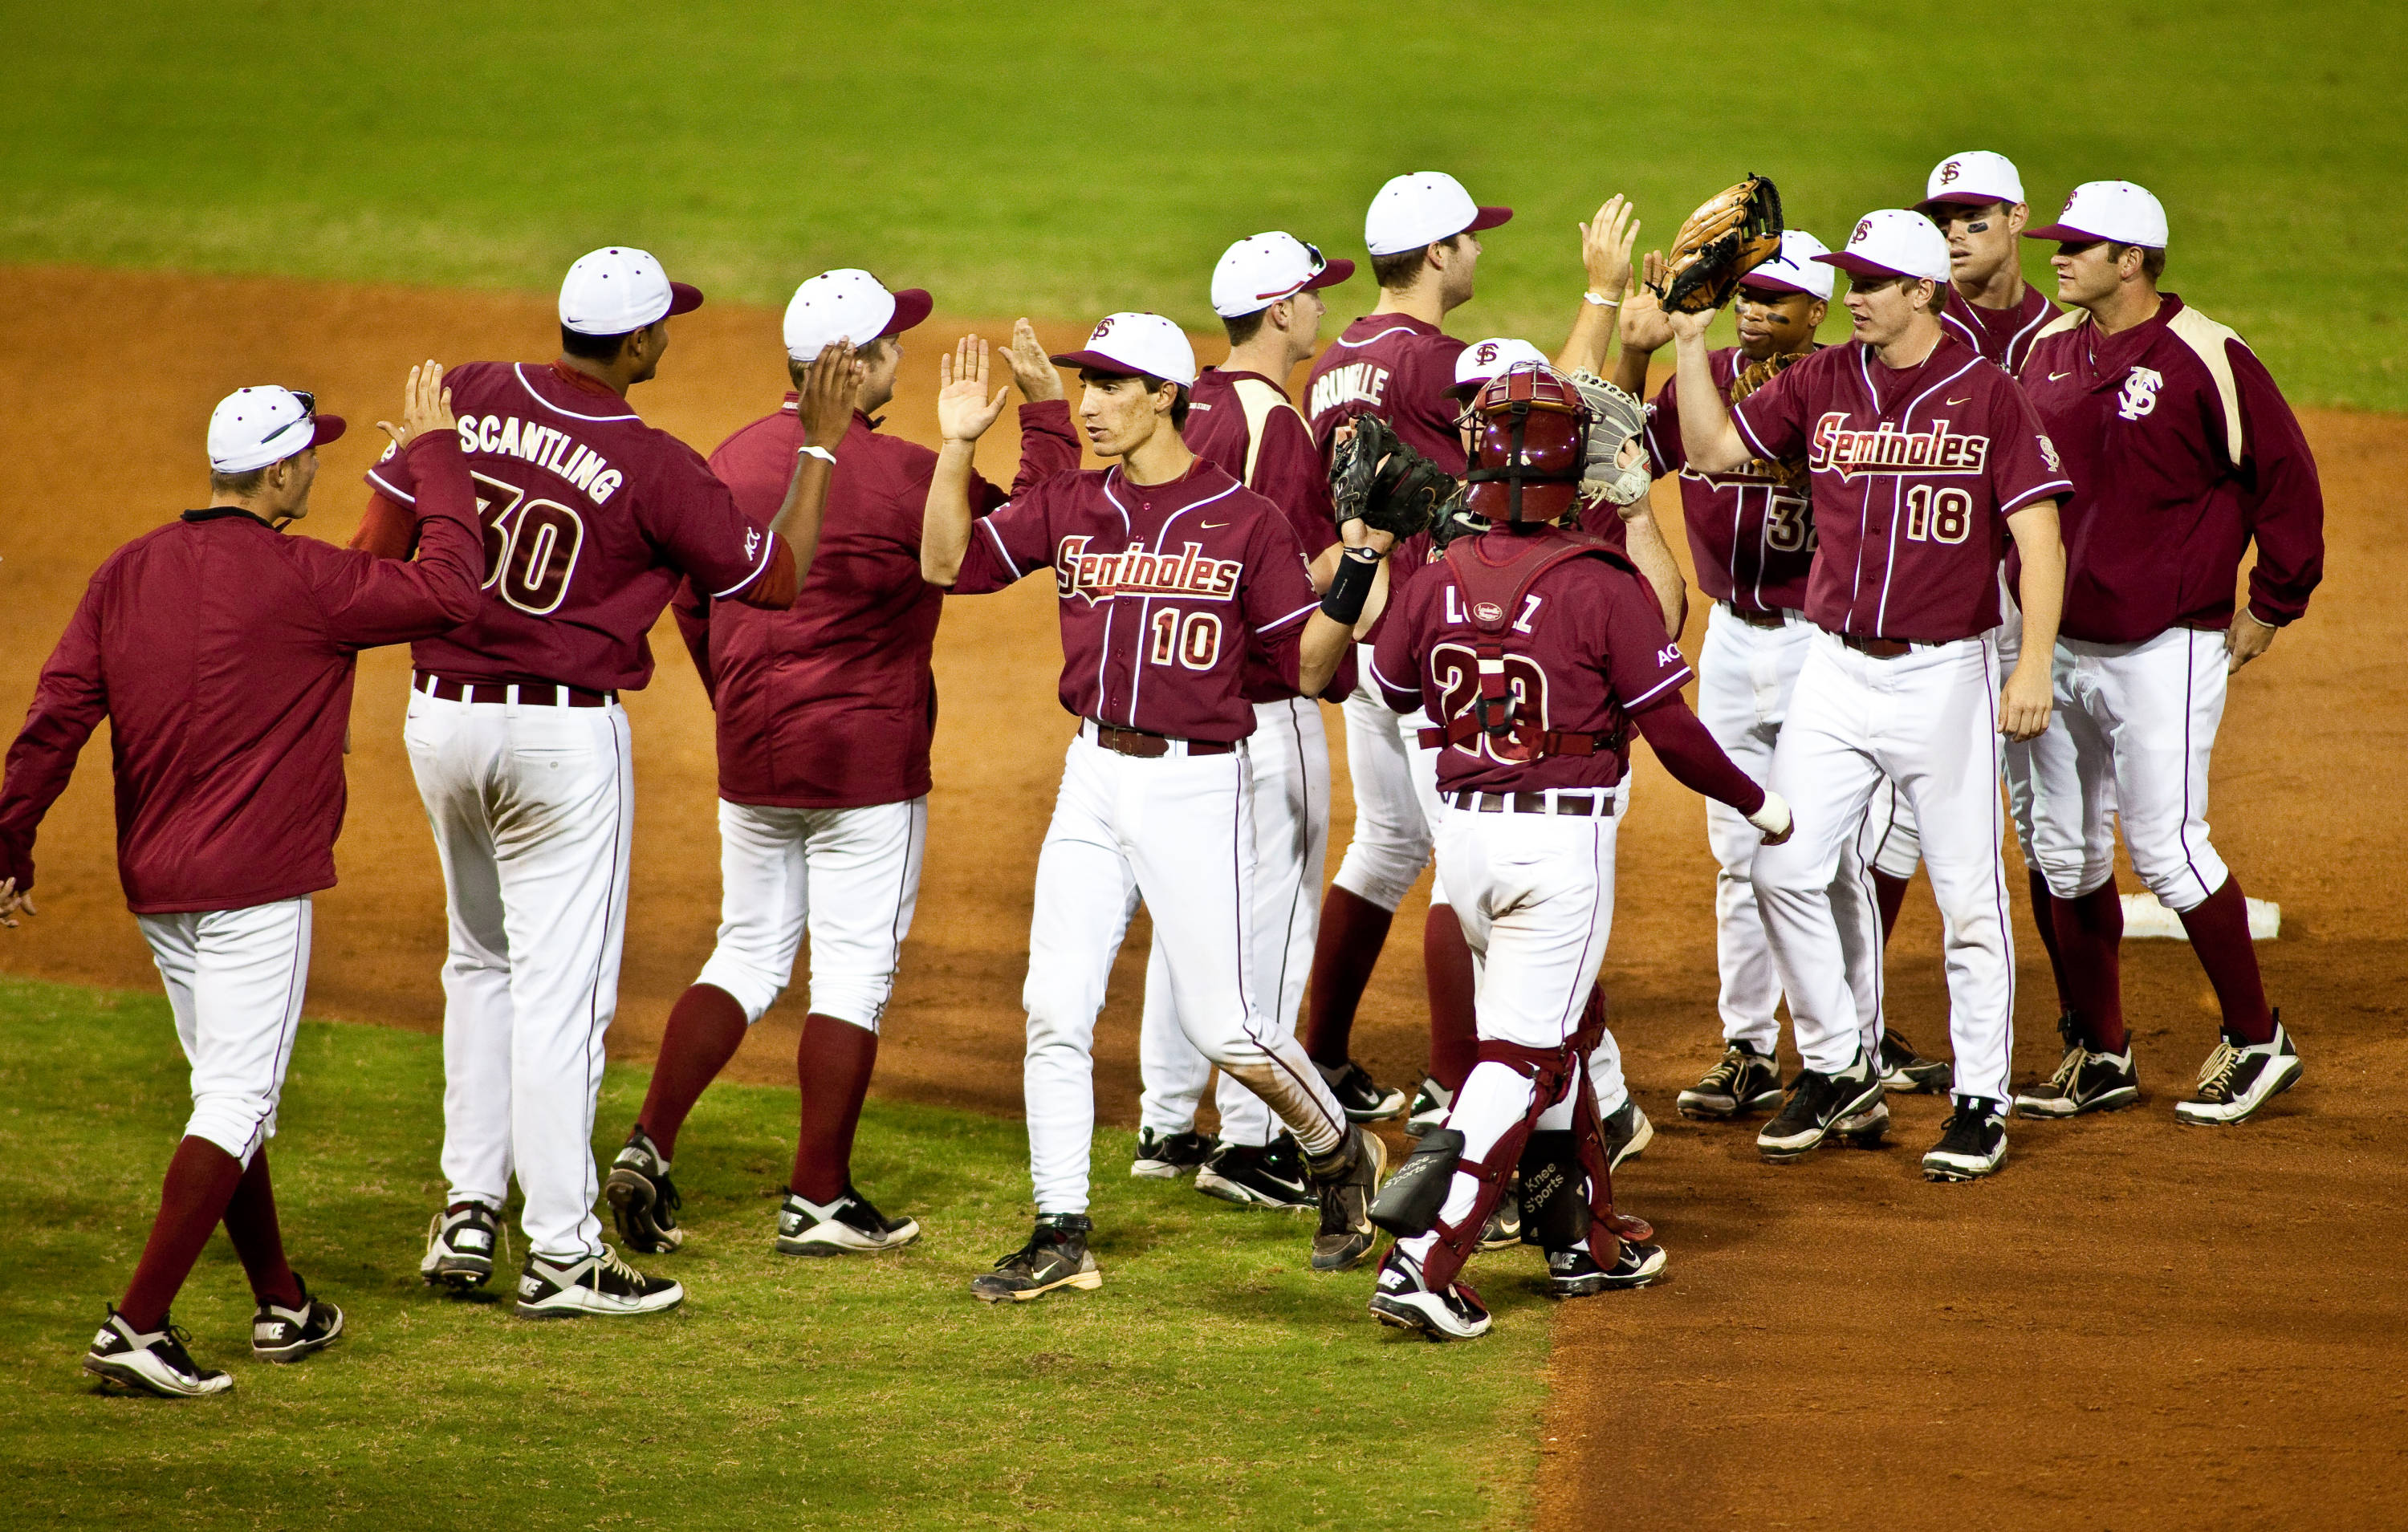 Seminoles celebrate their victory over the Gators